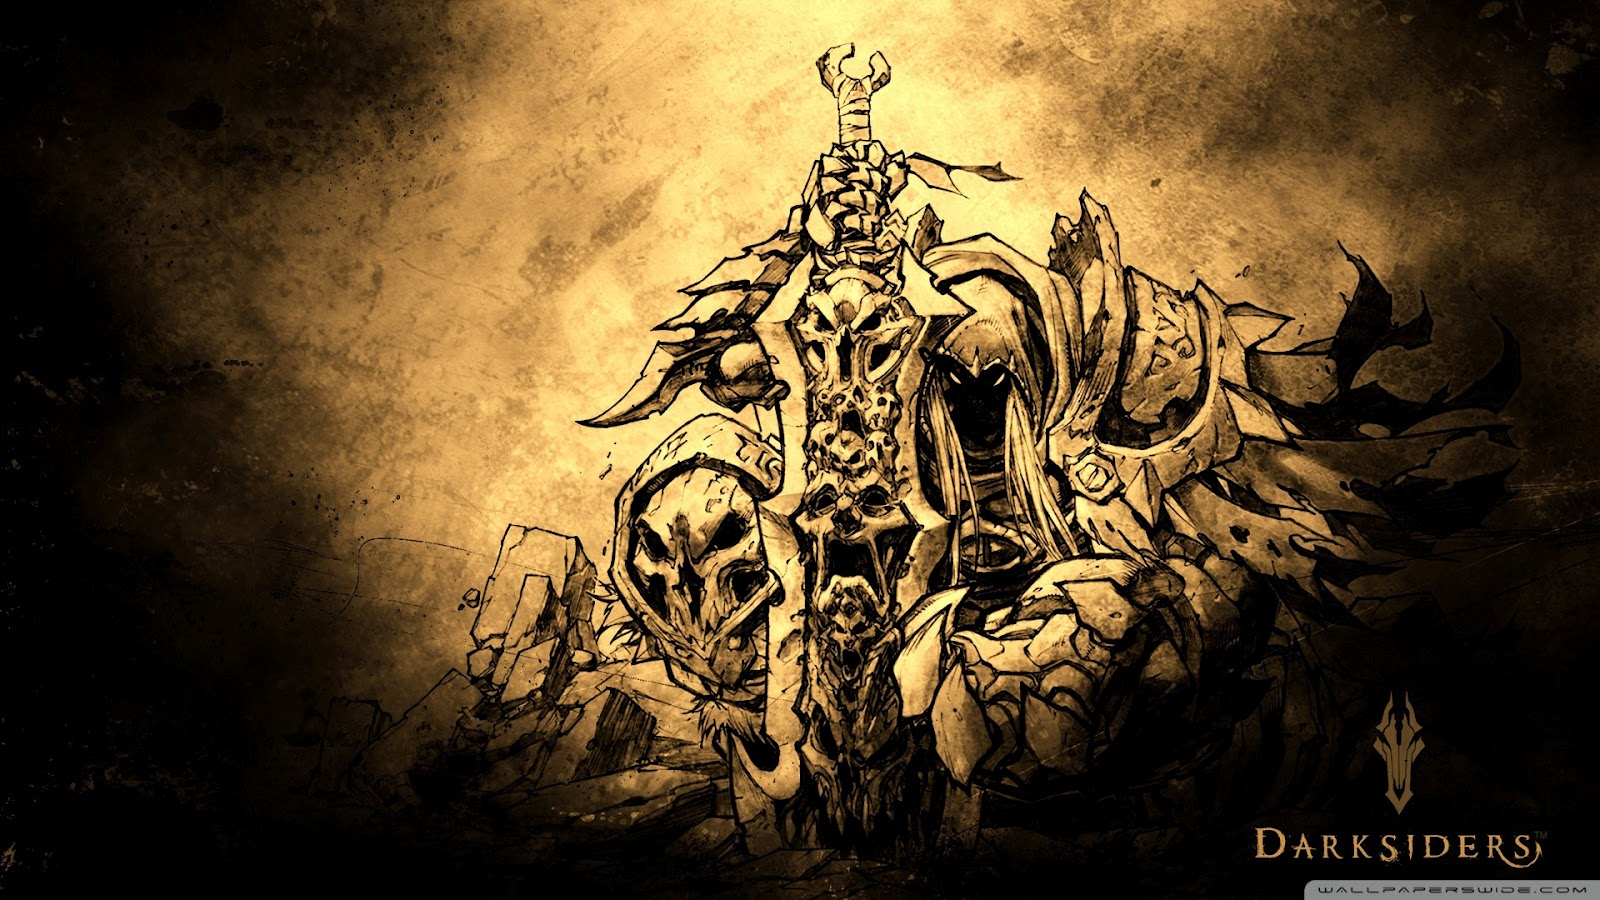 Darksiders War Wallpaper By: GameZ Hd WallpaperZ: Dark Siders II